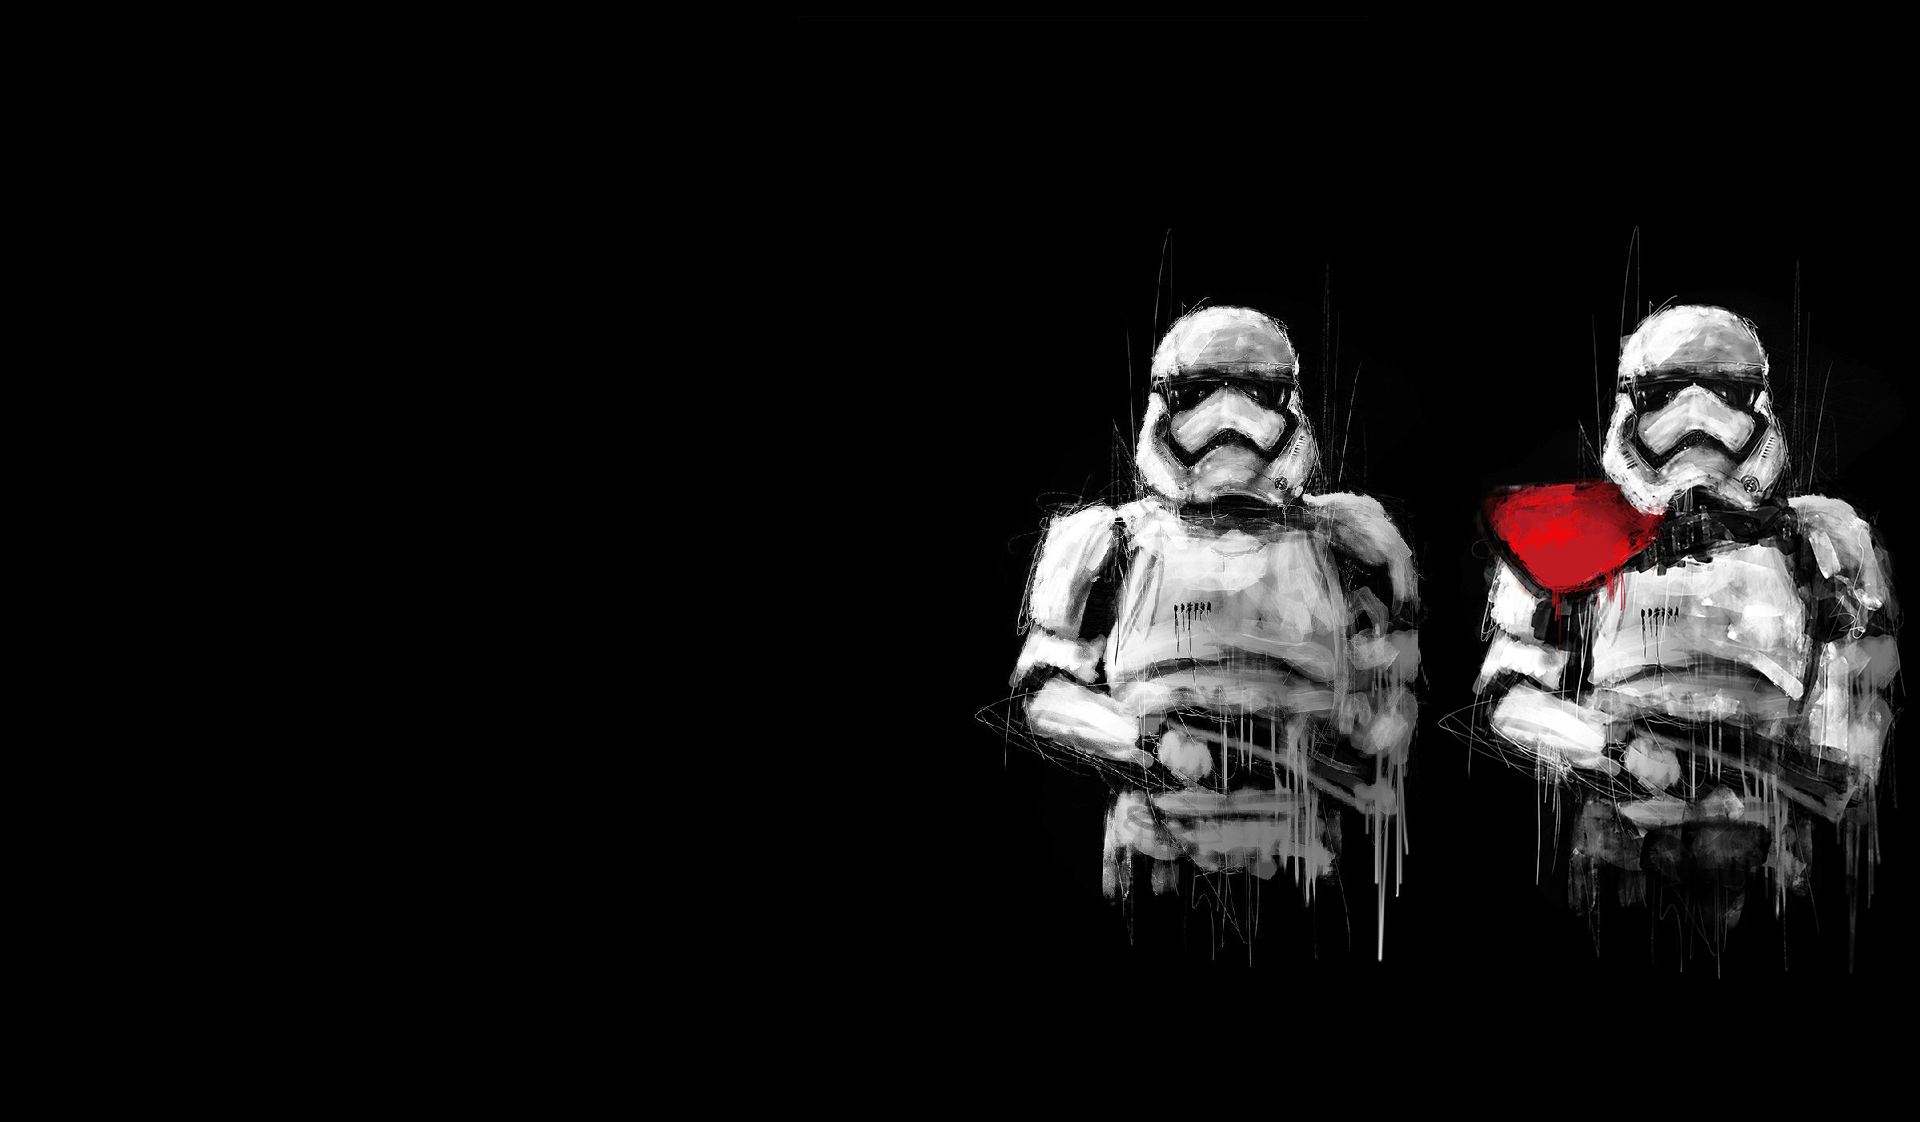 Stormtrooper Wallpaper HD | PixelsTalk.Net